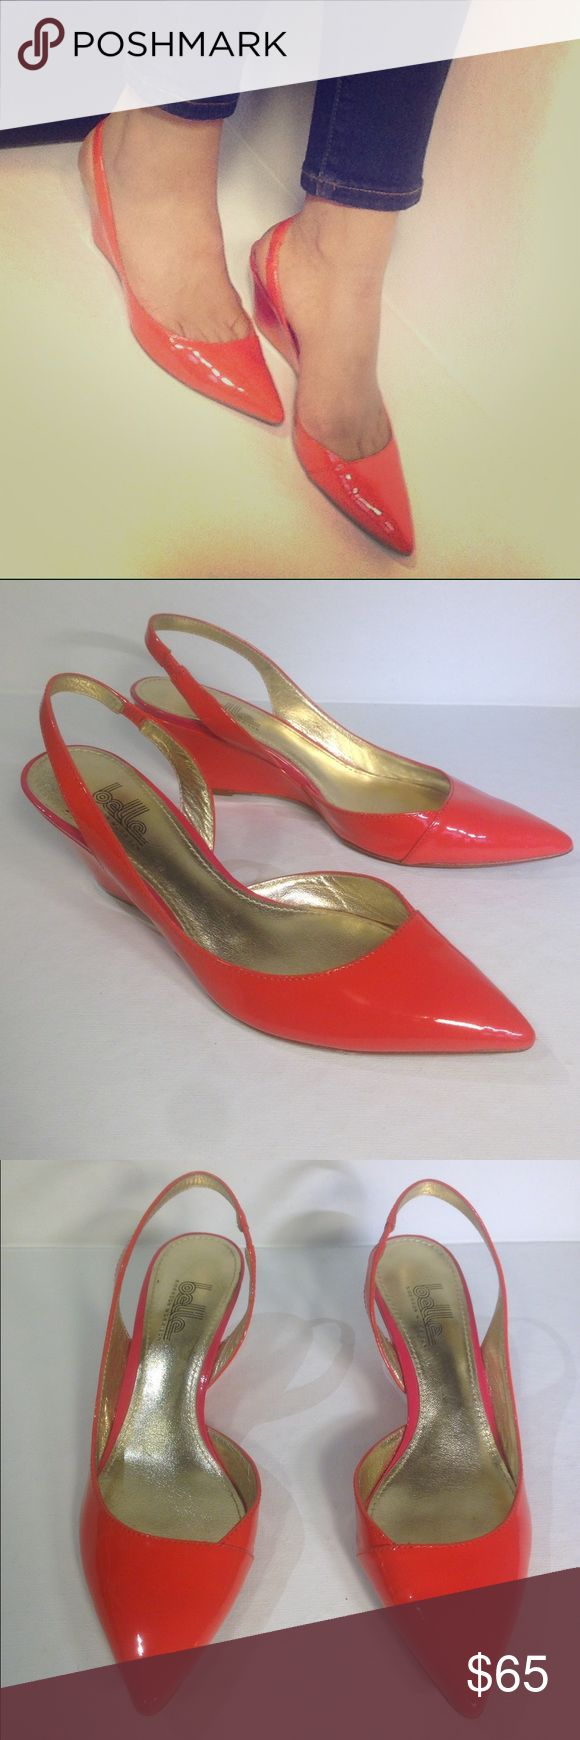 BELLE SIGERSON MORRISON CORAL POINTED WEDGES In very good condition. Worn twice. Size 6.5 but run small. Tiny dirt marks on heel, some scuffing on upper. No other significant flaws. Pointed toe, sling back. Leather upper and sole. Belle by Sigerson Morrison Shoes Wedges